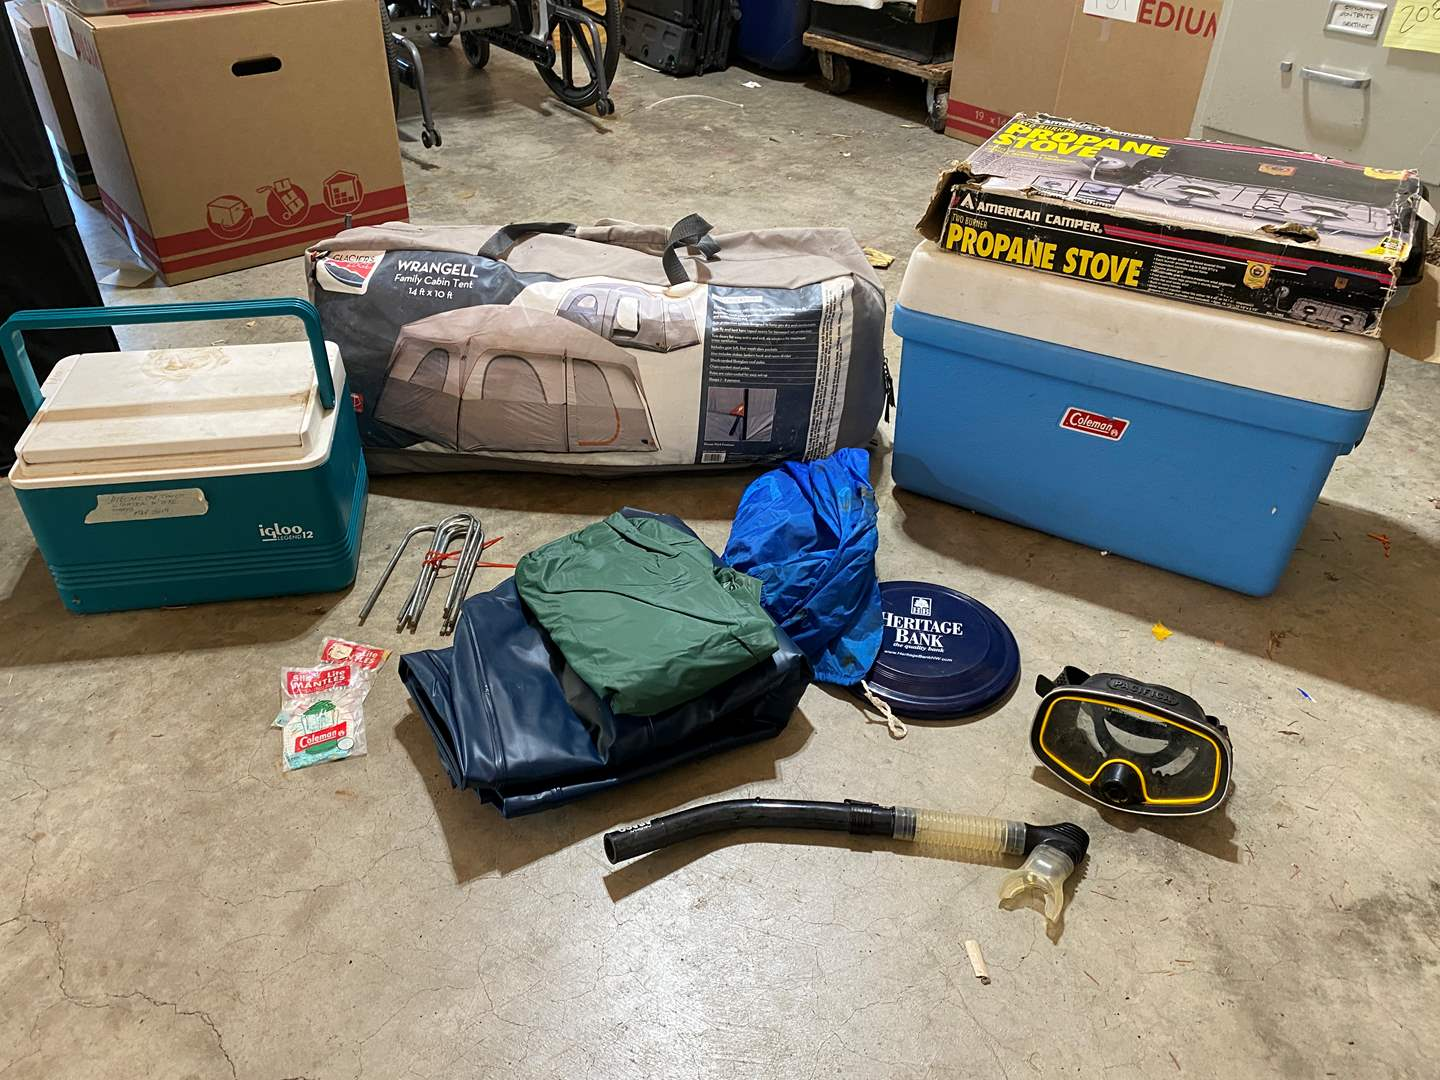 Lot # 215 - Camping: Coleman Cooler, Large Family Cabin Tent, Propane Stove, Inflatable Bed & More (main image)